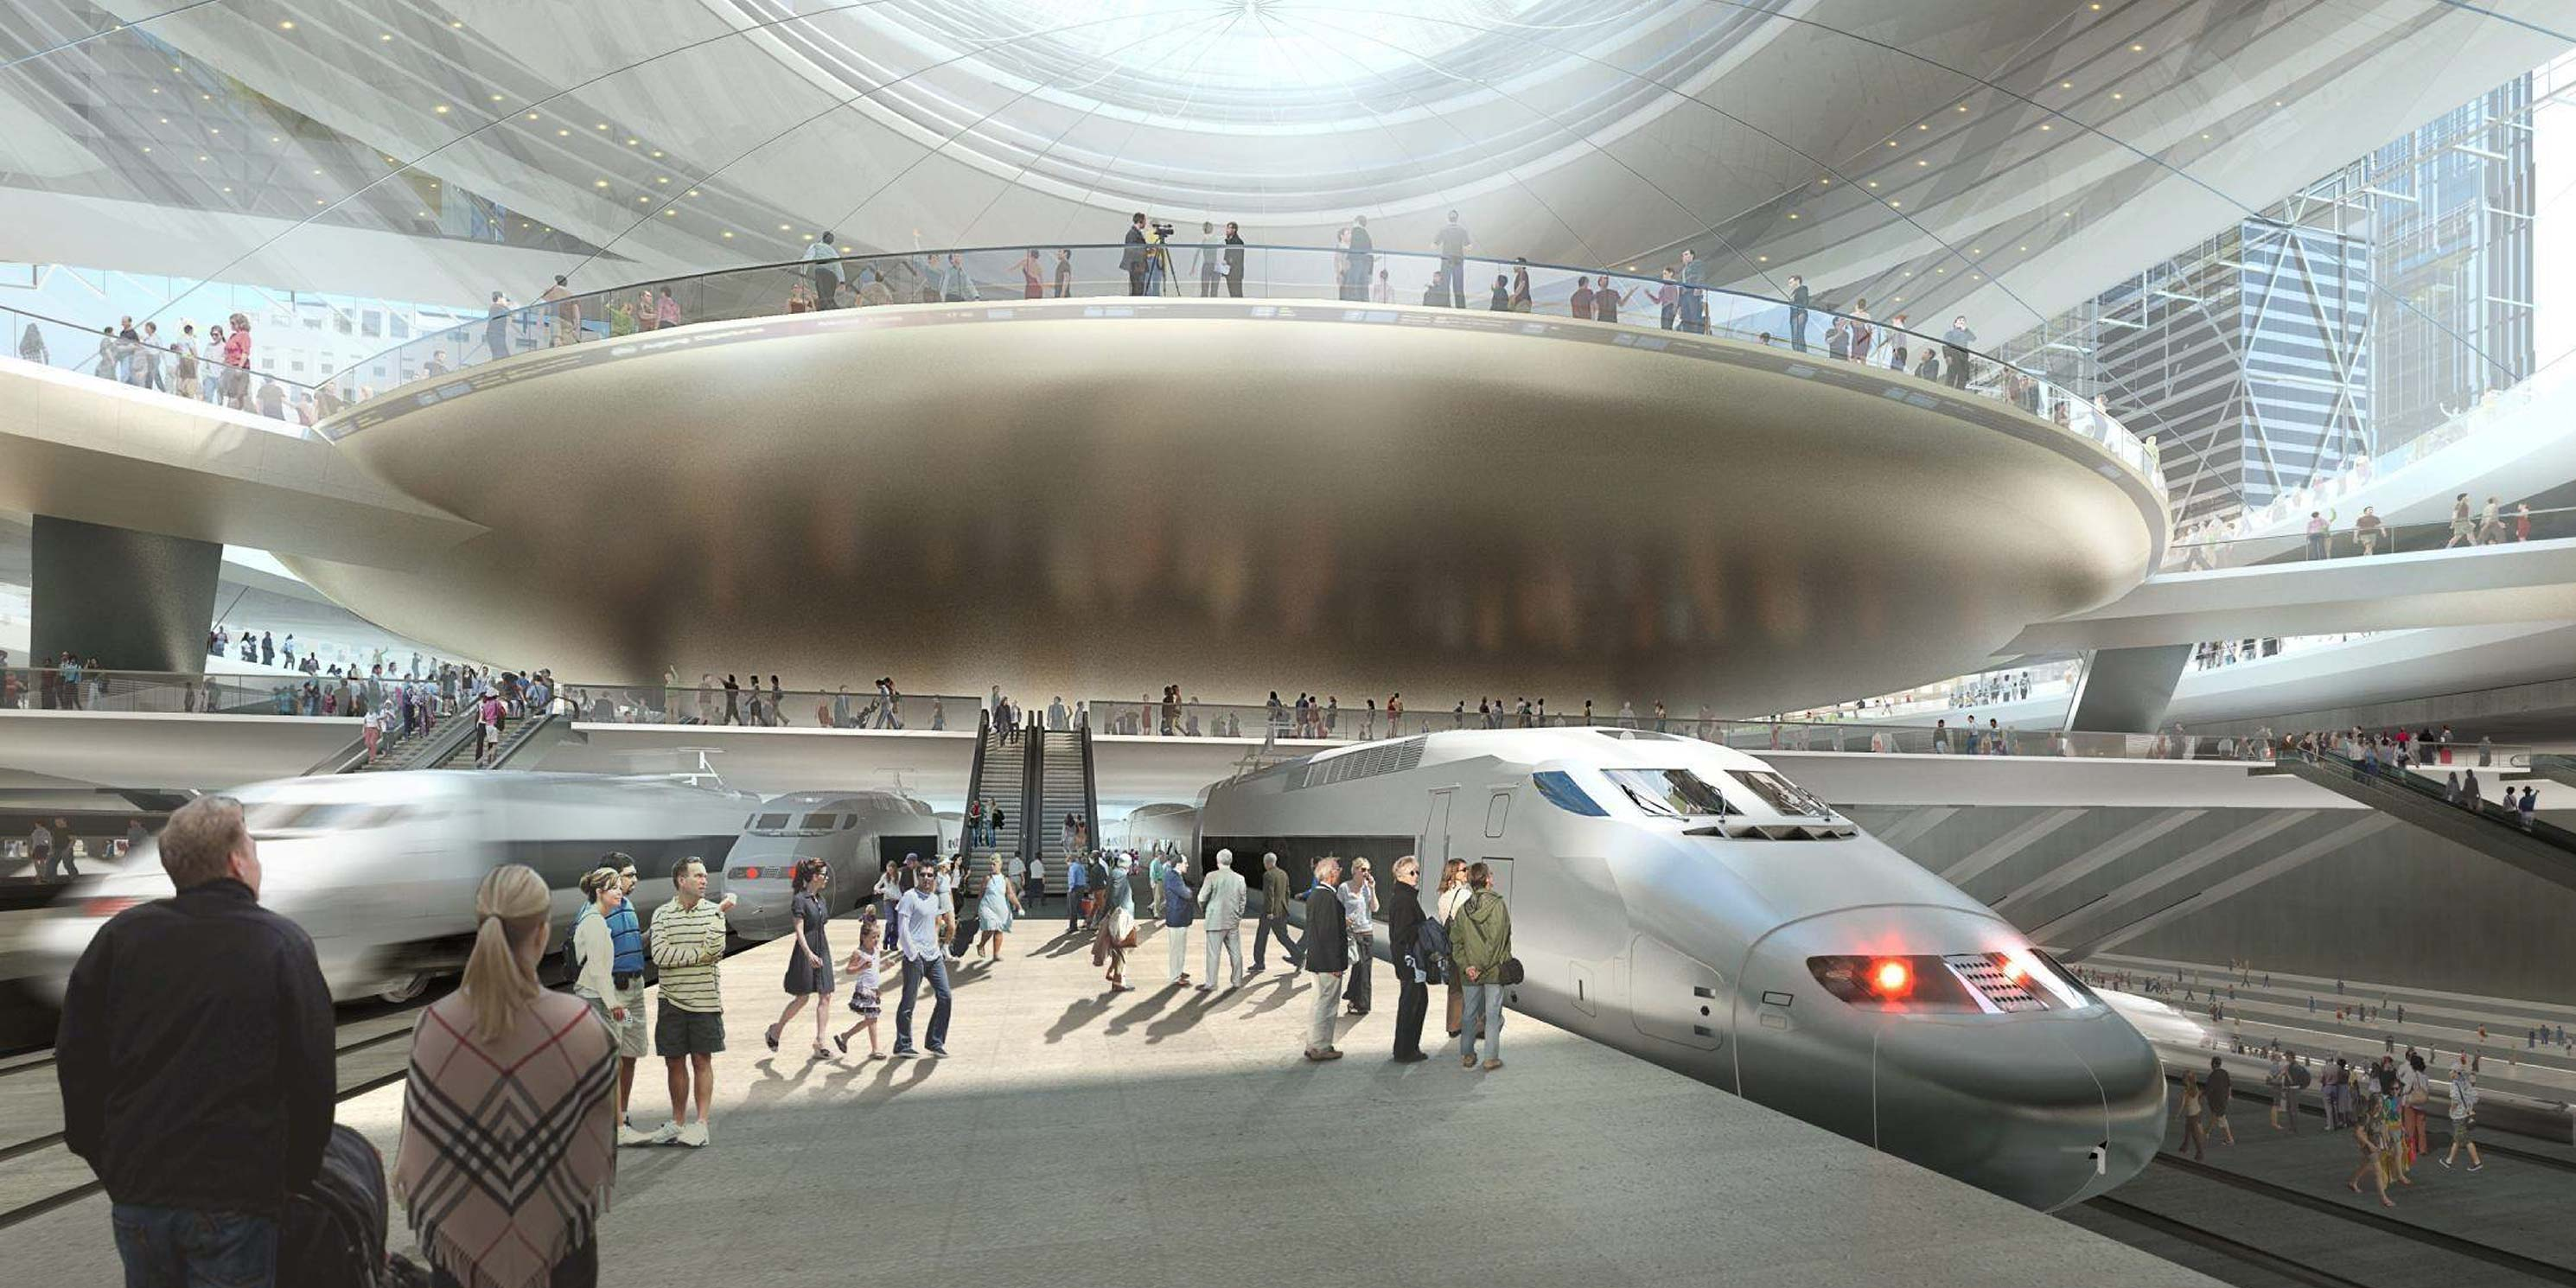 Rendering of a future Penn Station with bullet trains